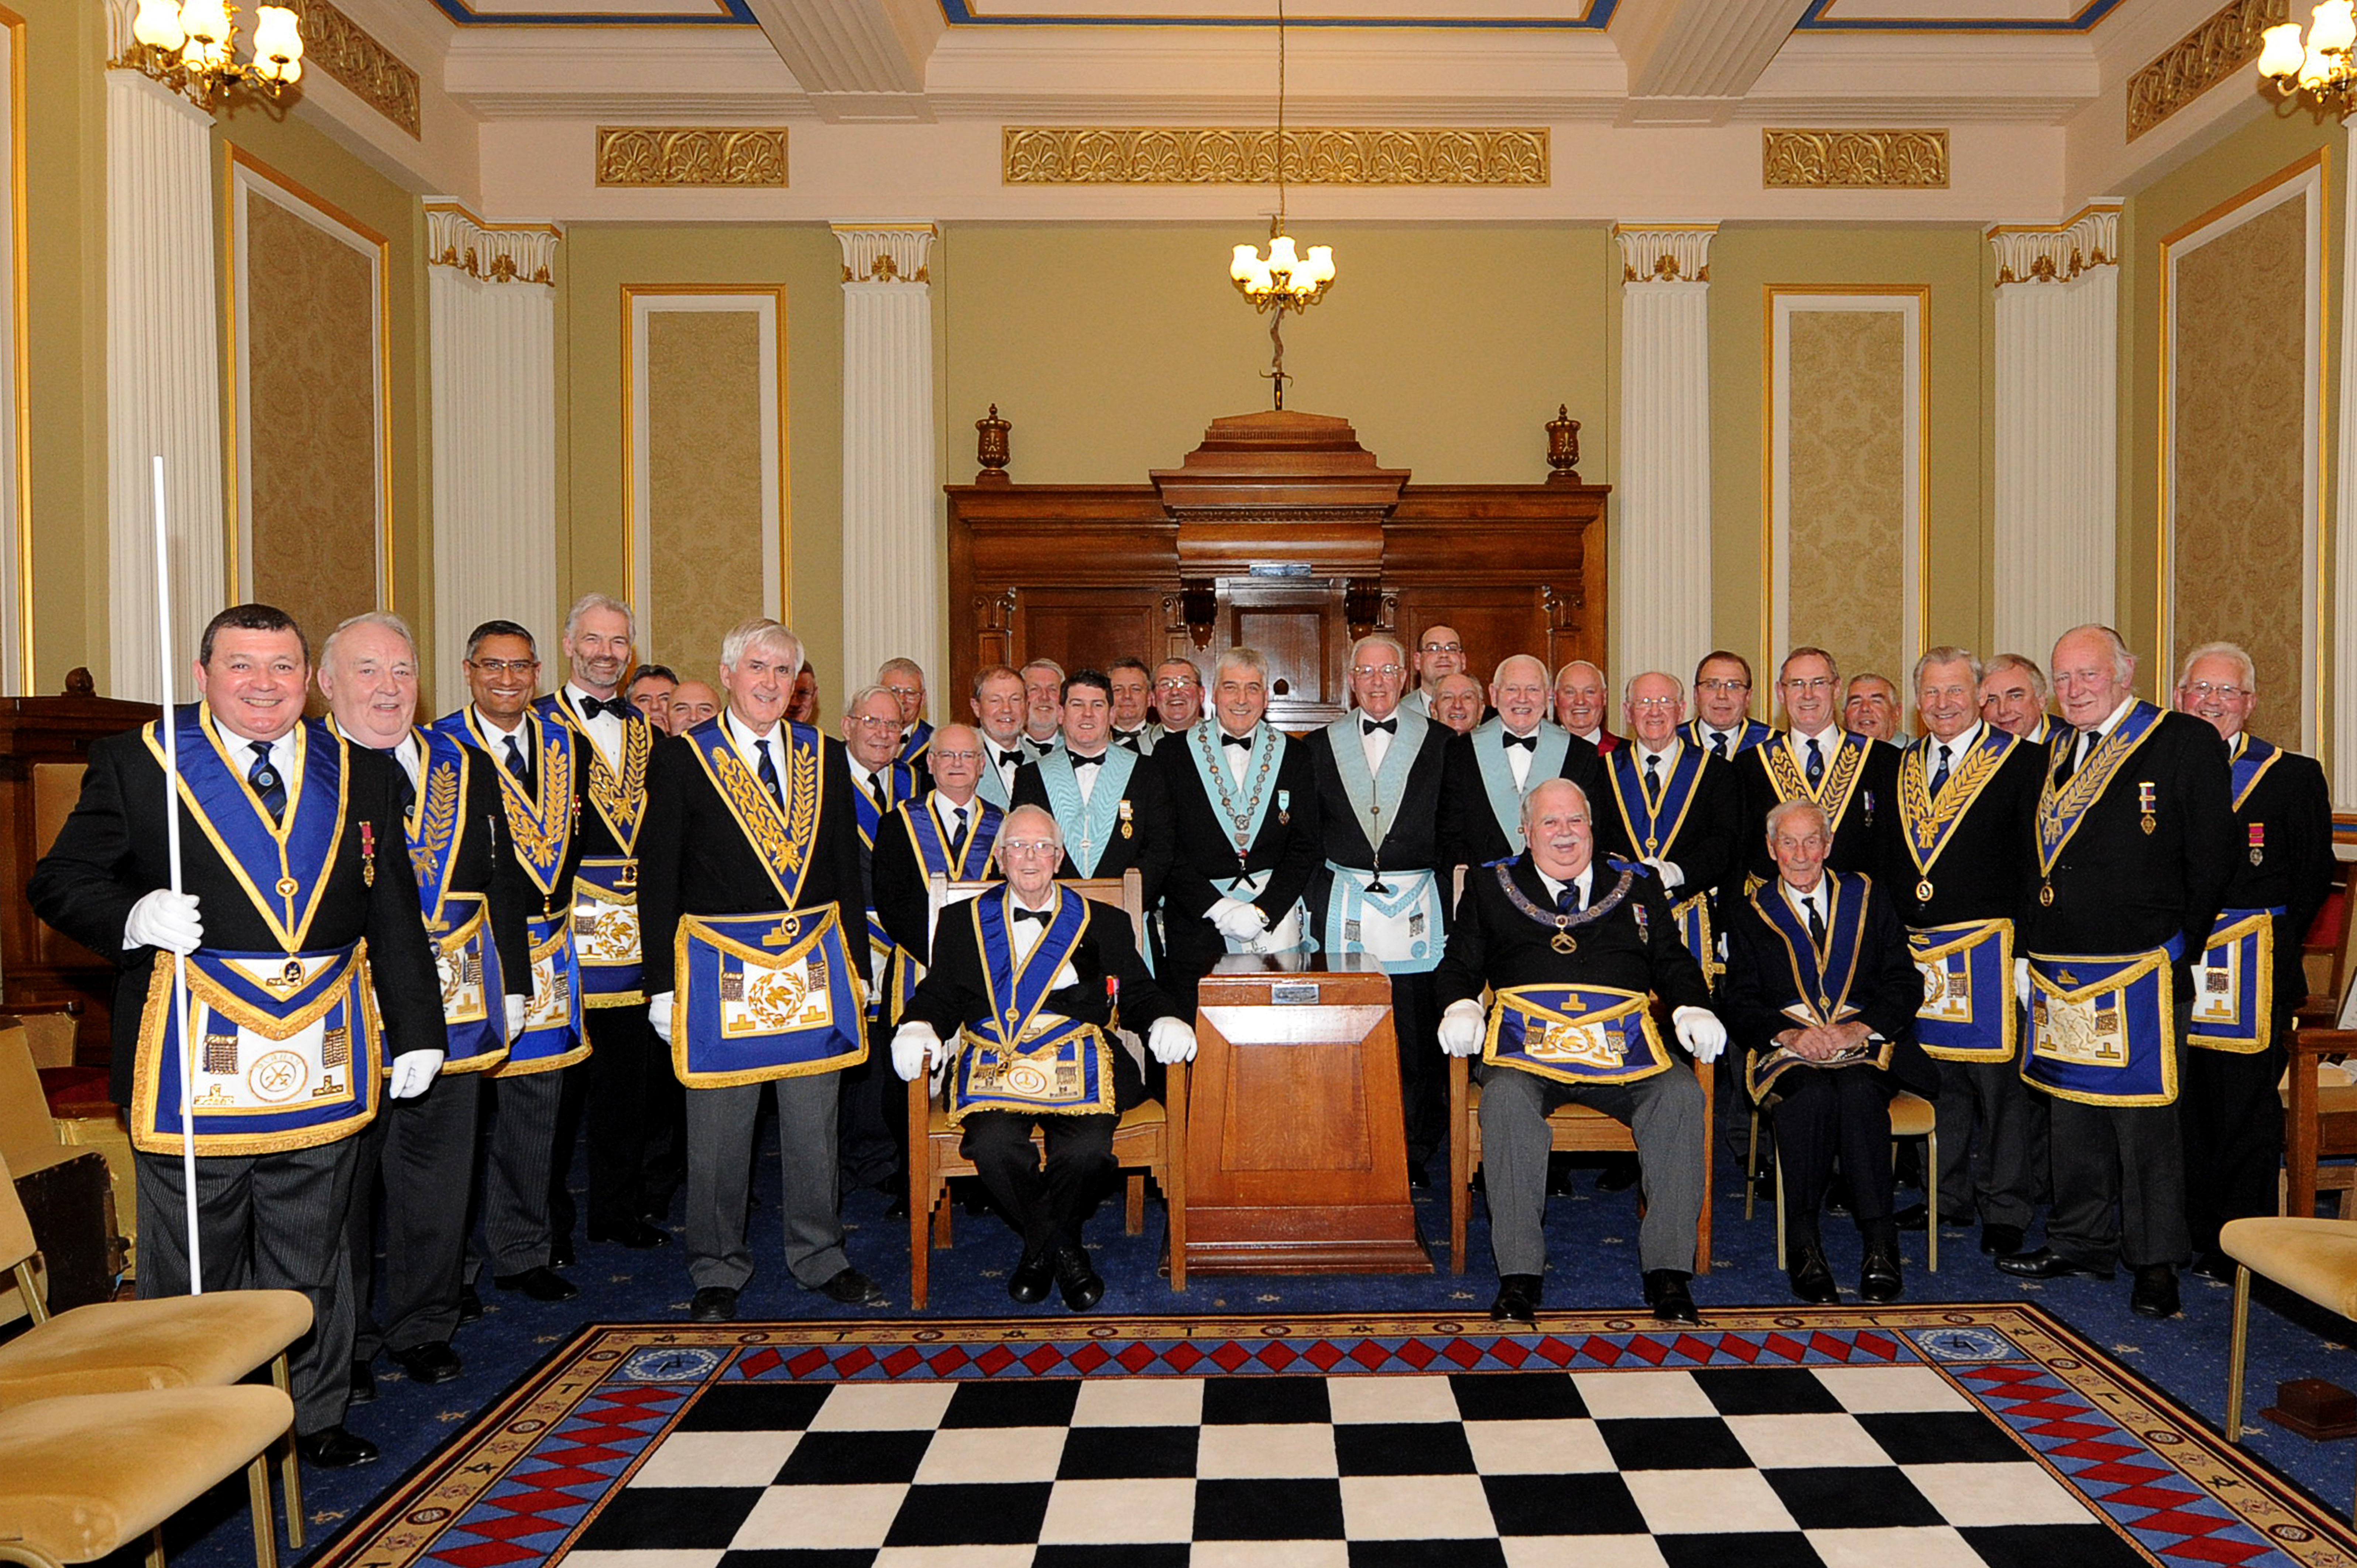 AMITYLODGEORG Secret Archive Reveals Freemasons Might Be More Powerful Than Ever Imagined